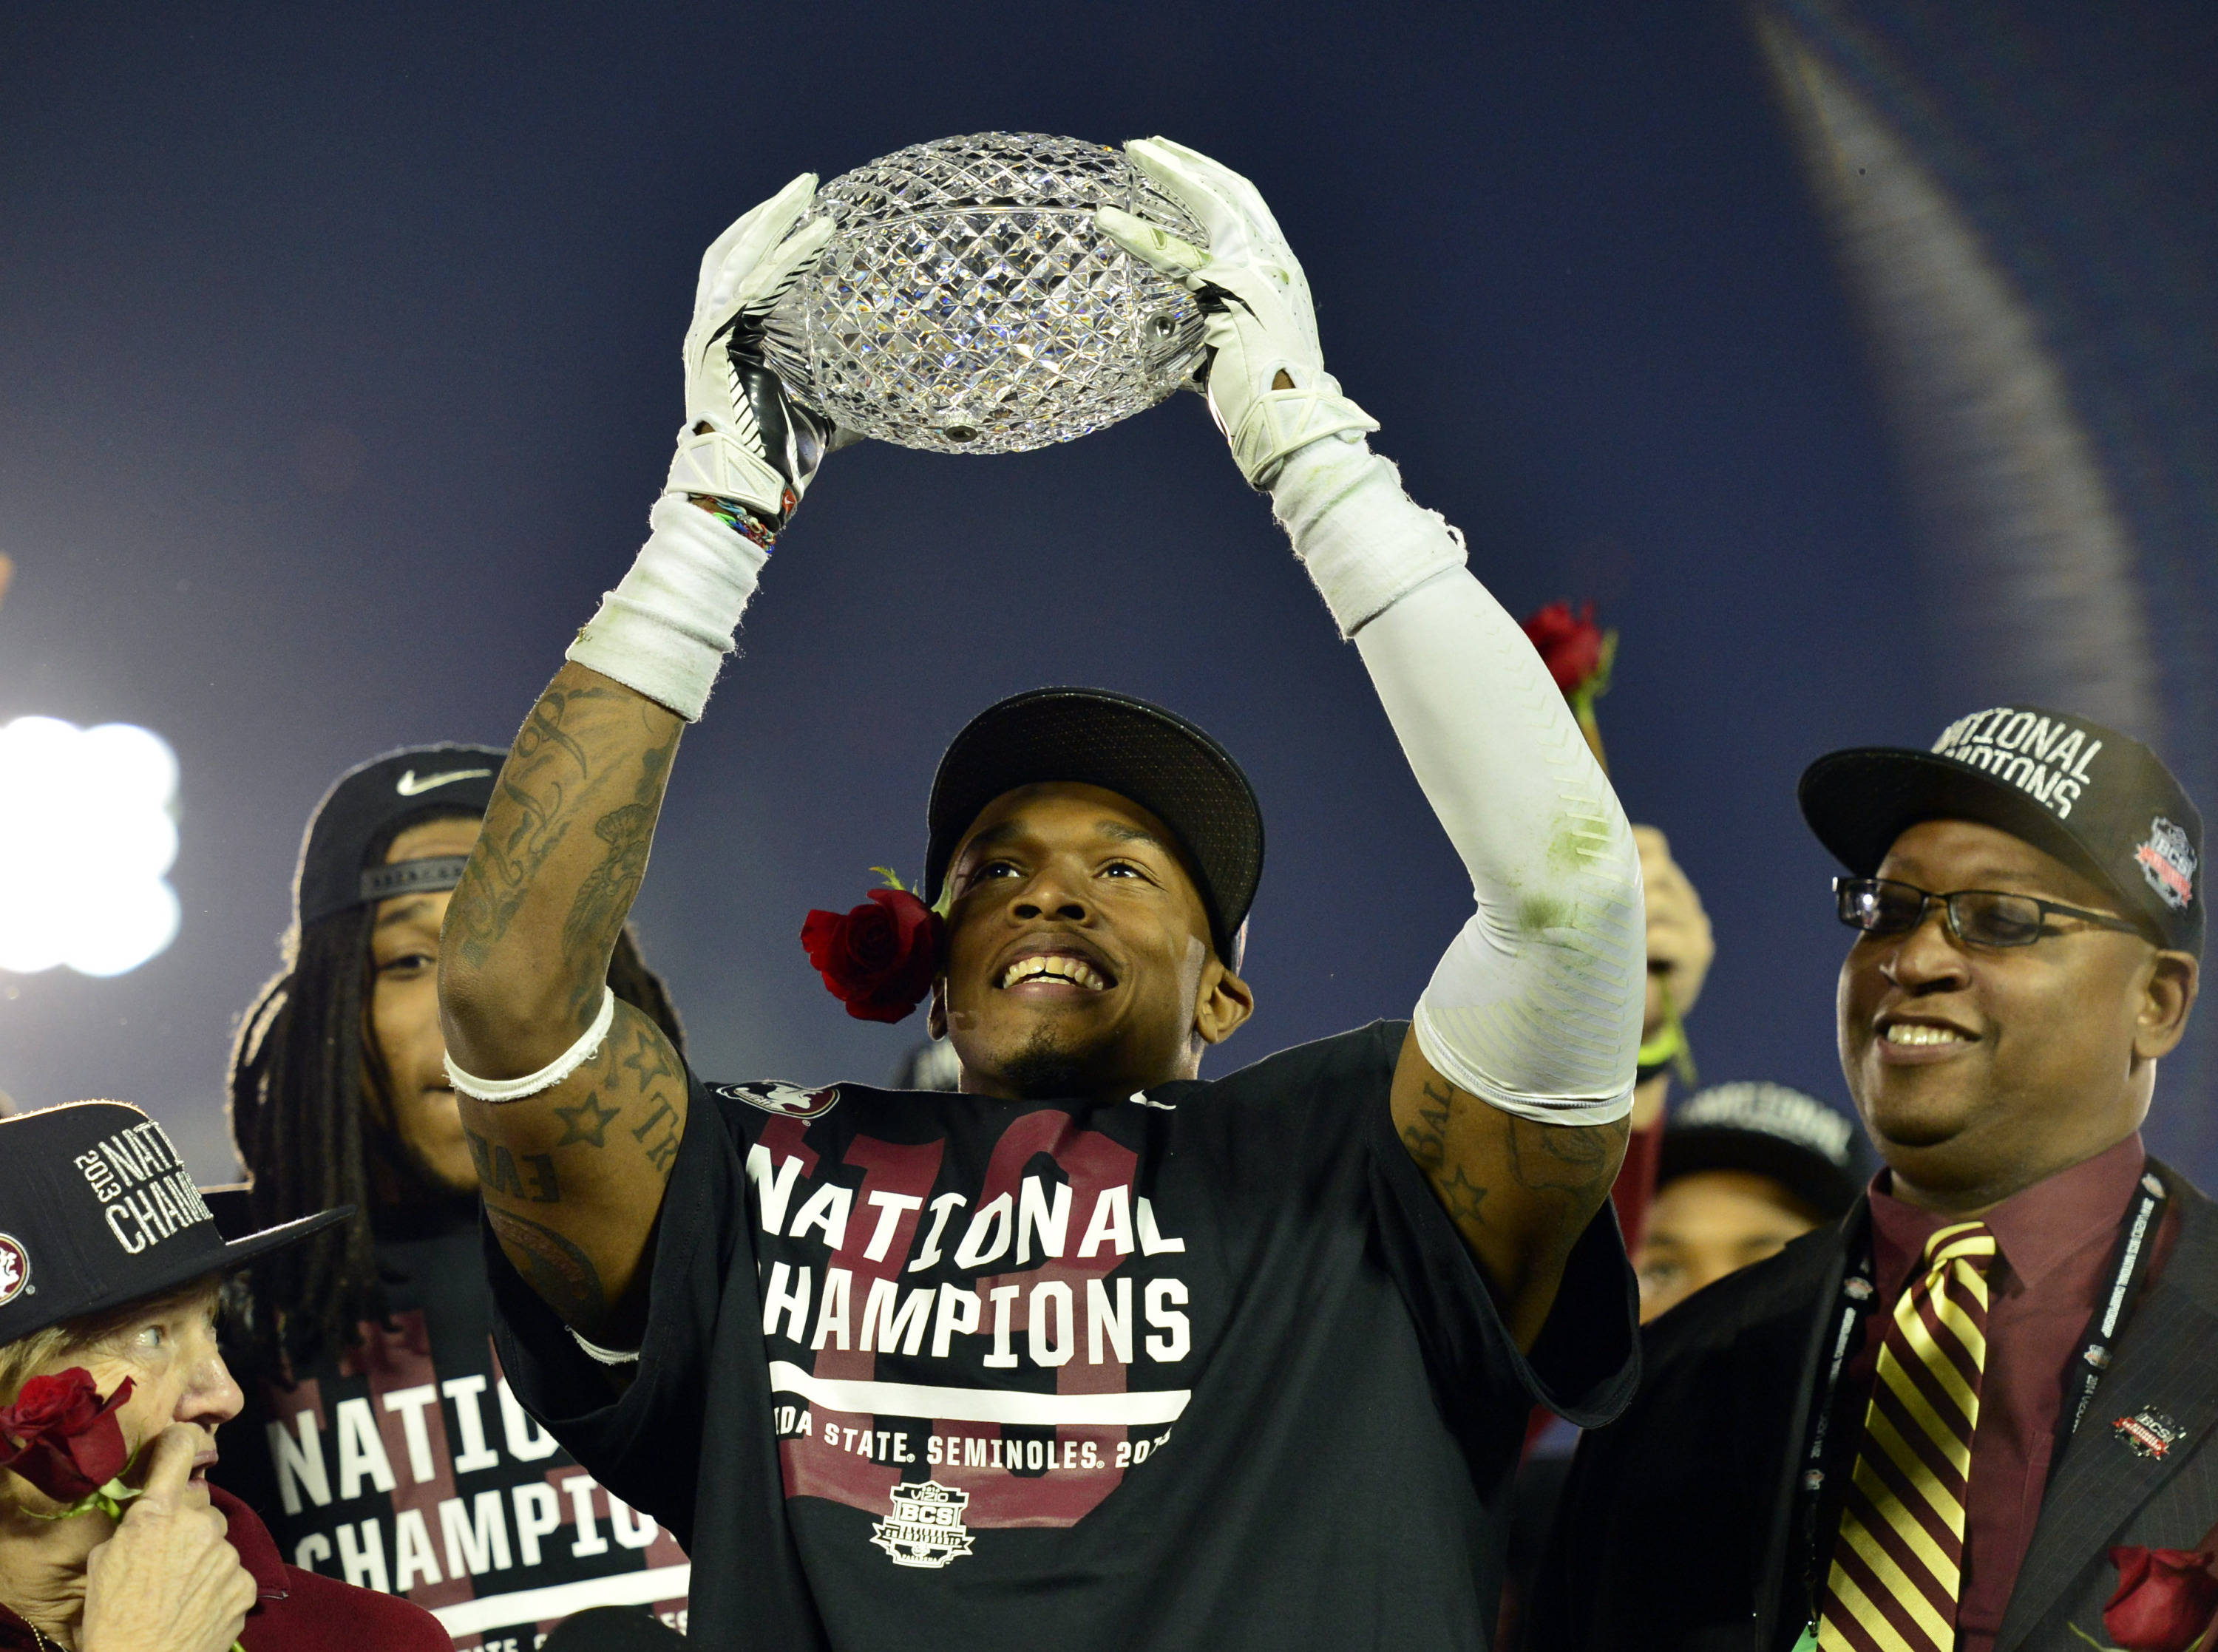 Jan 6, 2014; Pasadena, CA, USA; Florida State Seminoles defensive back P.J. Williams (26) celebrates with the Coaches Trophy after winning the 2014 BCS National Championship game against Auburn Tigers 34-31 at the Rose Bowl.  Mandatory Credit: Richard Mackson-USA TODAY Sports